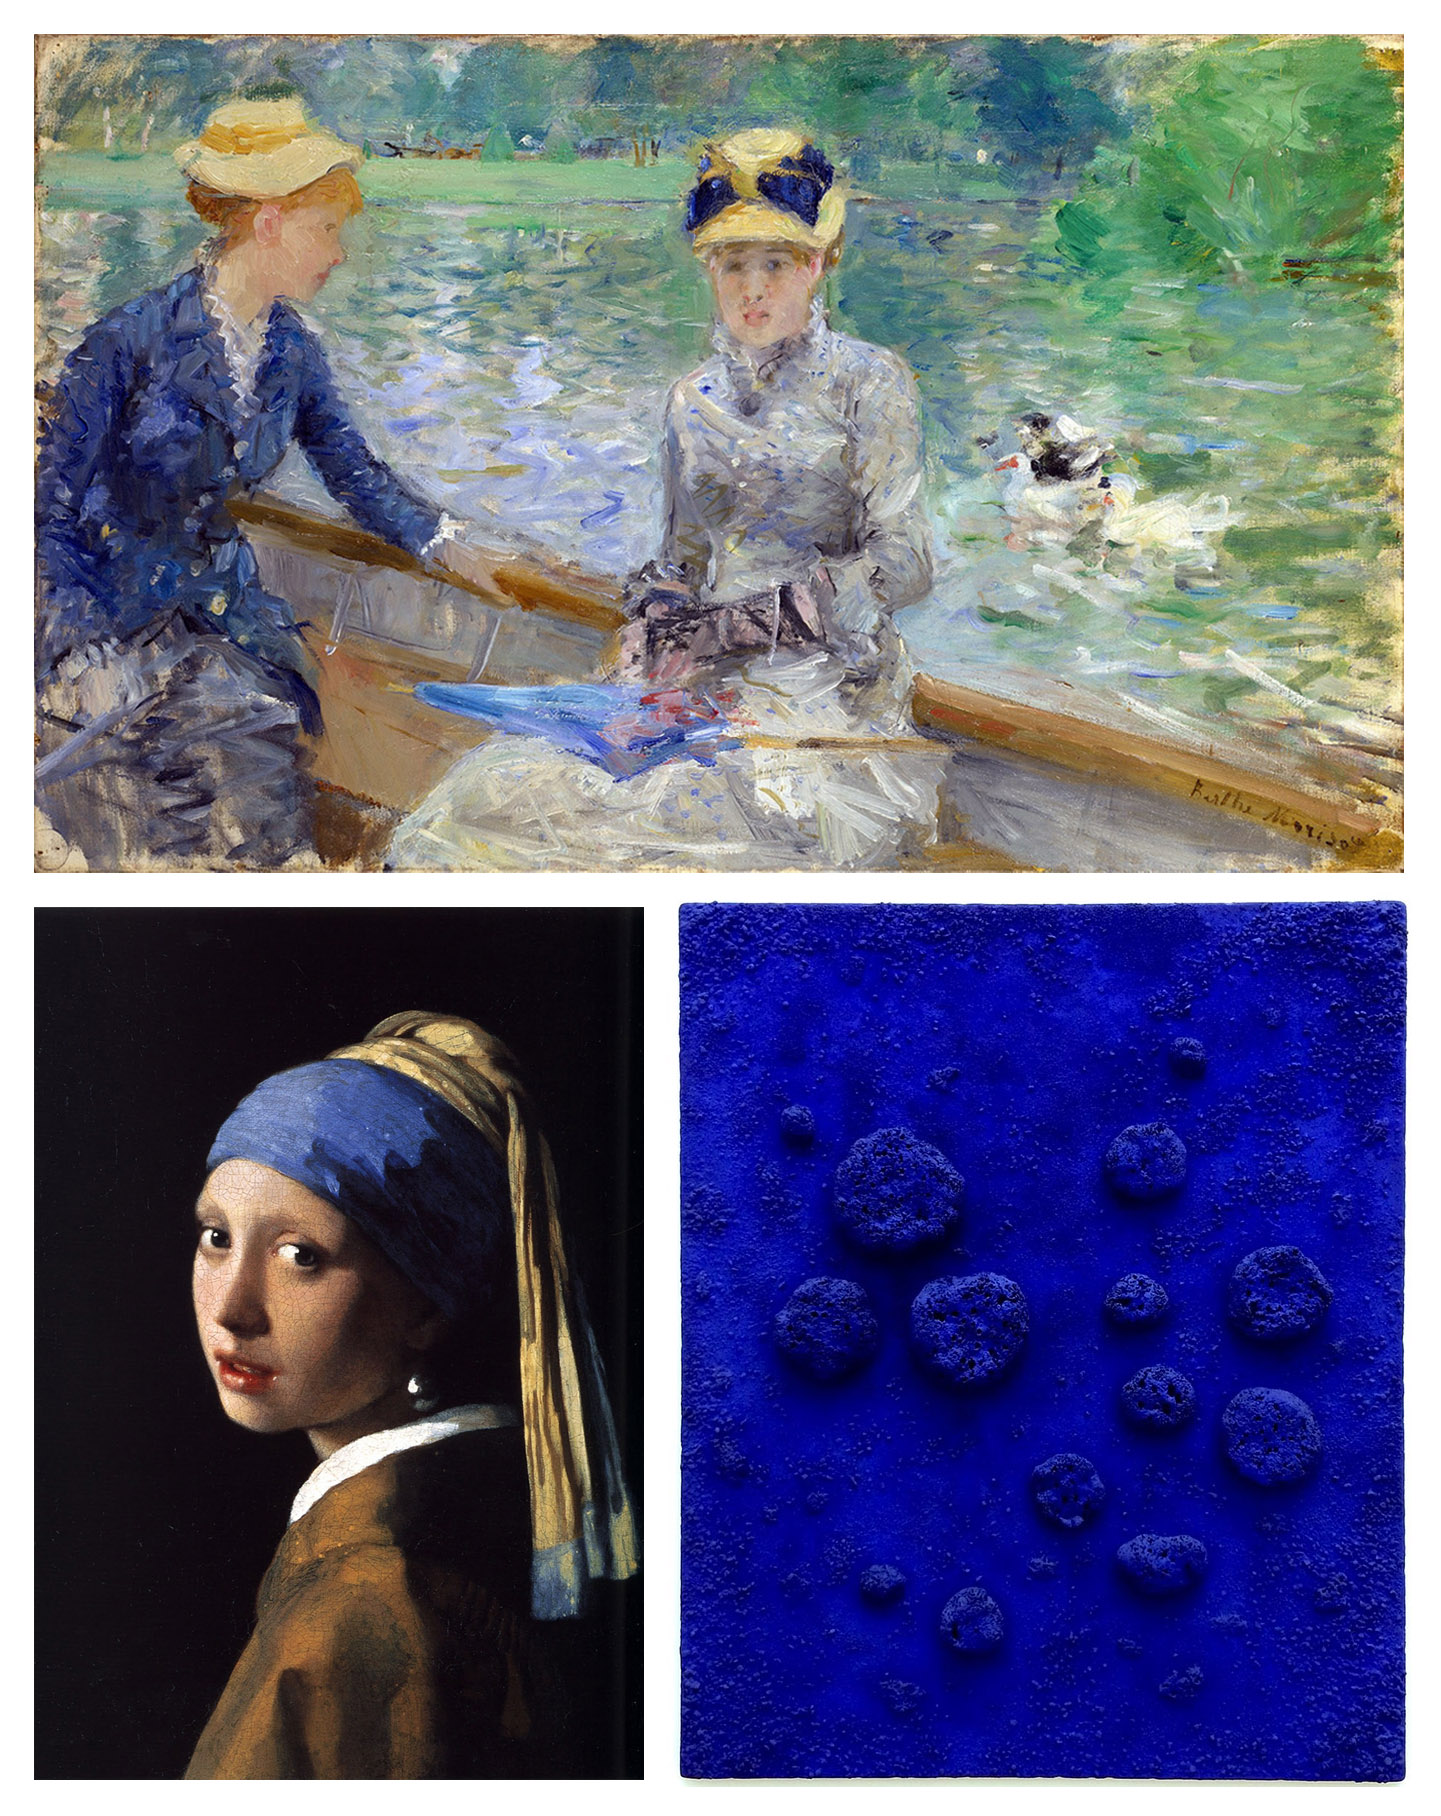 Shades of Blue Ultra Marine Johannes Vermeer Cerulean Berthe Morisot International Klein Blue Yves